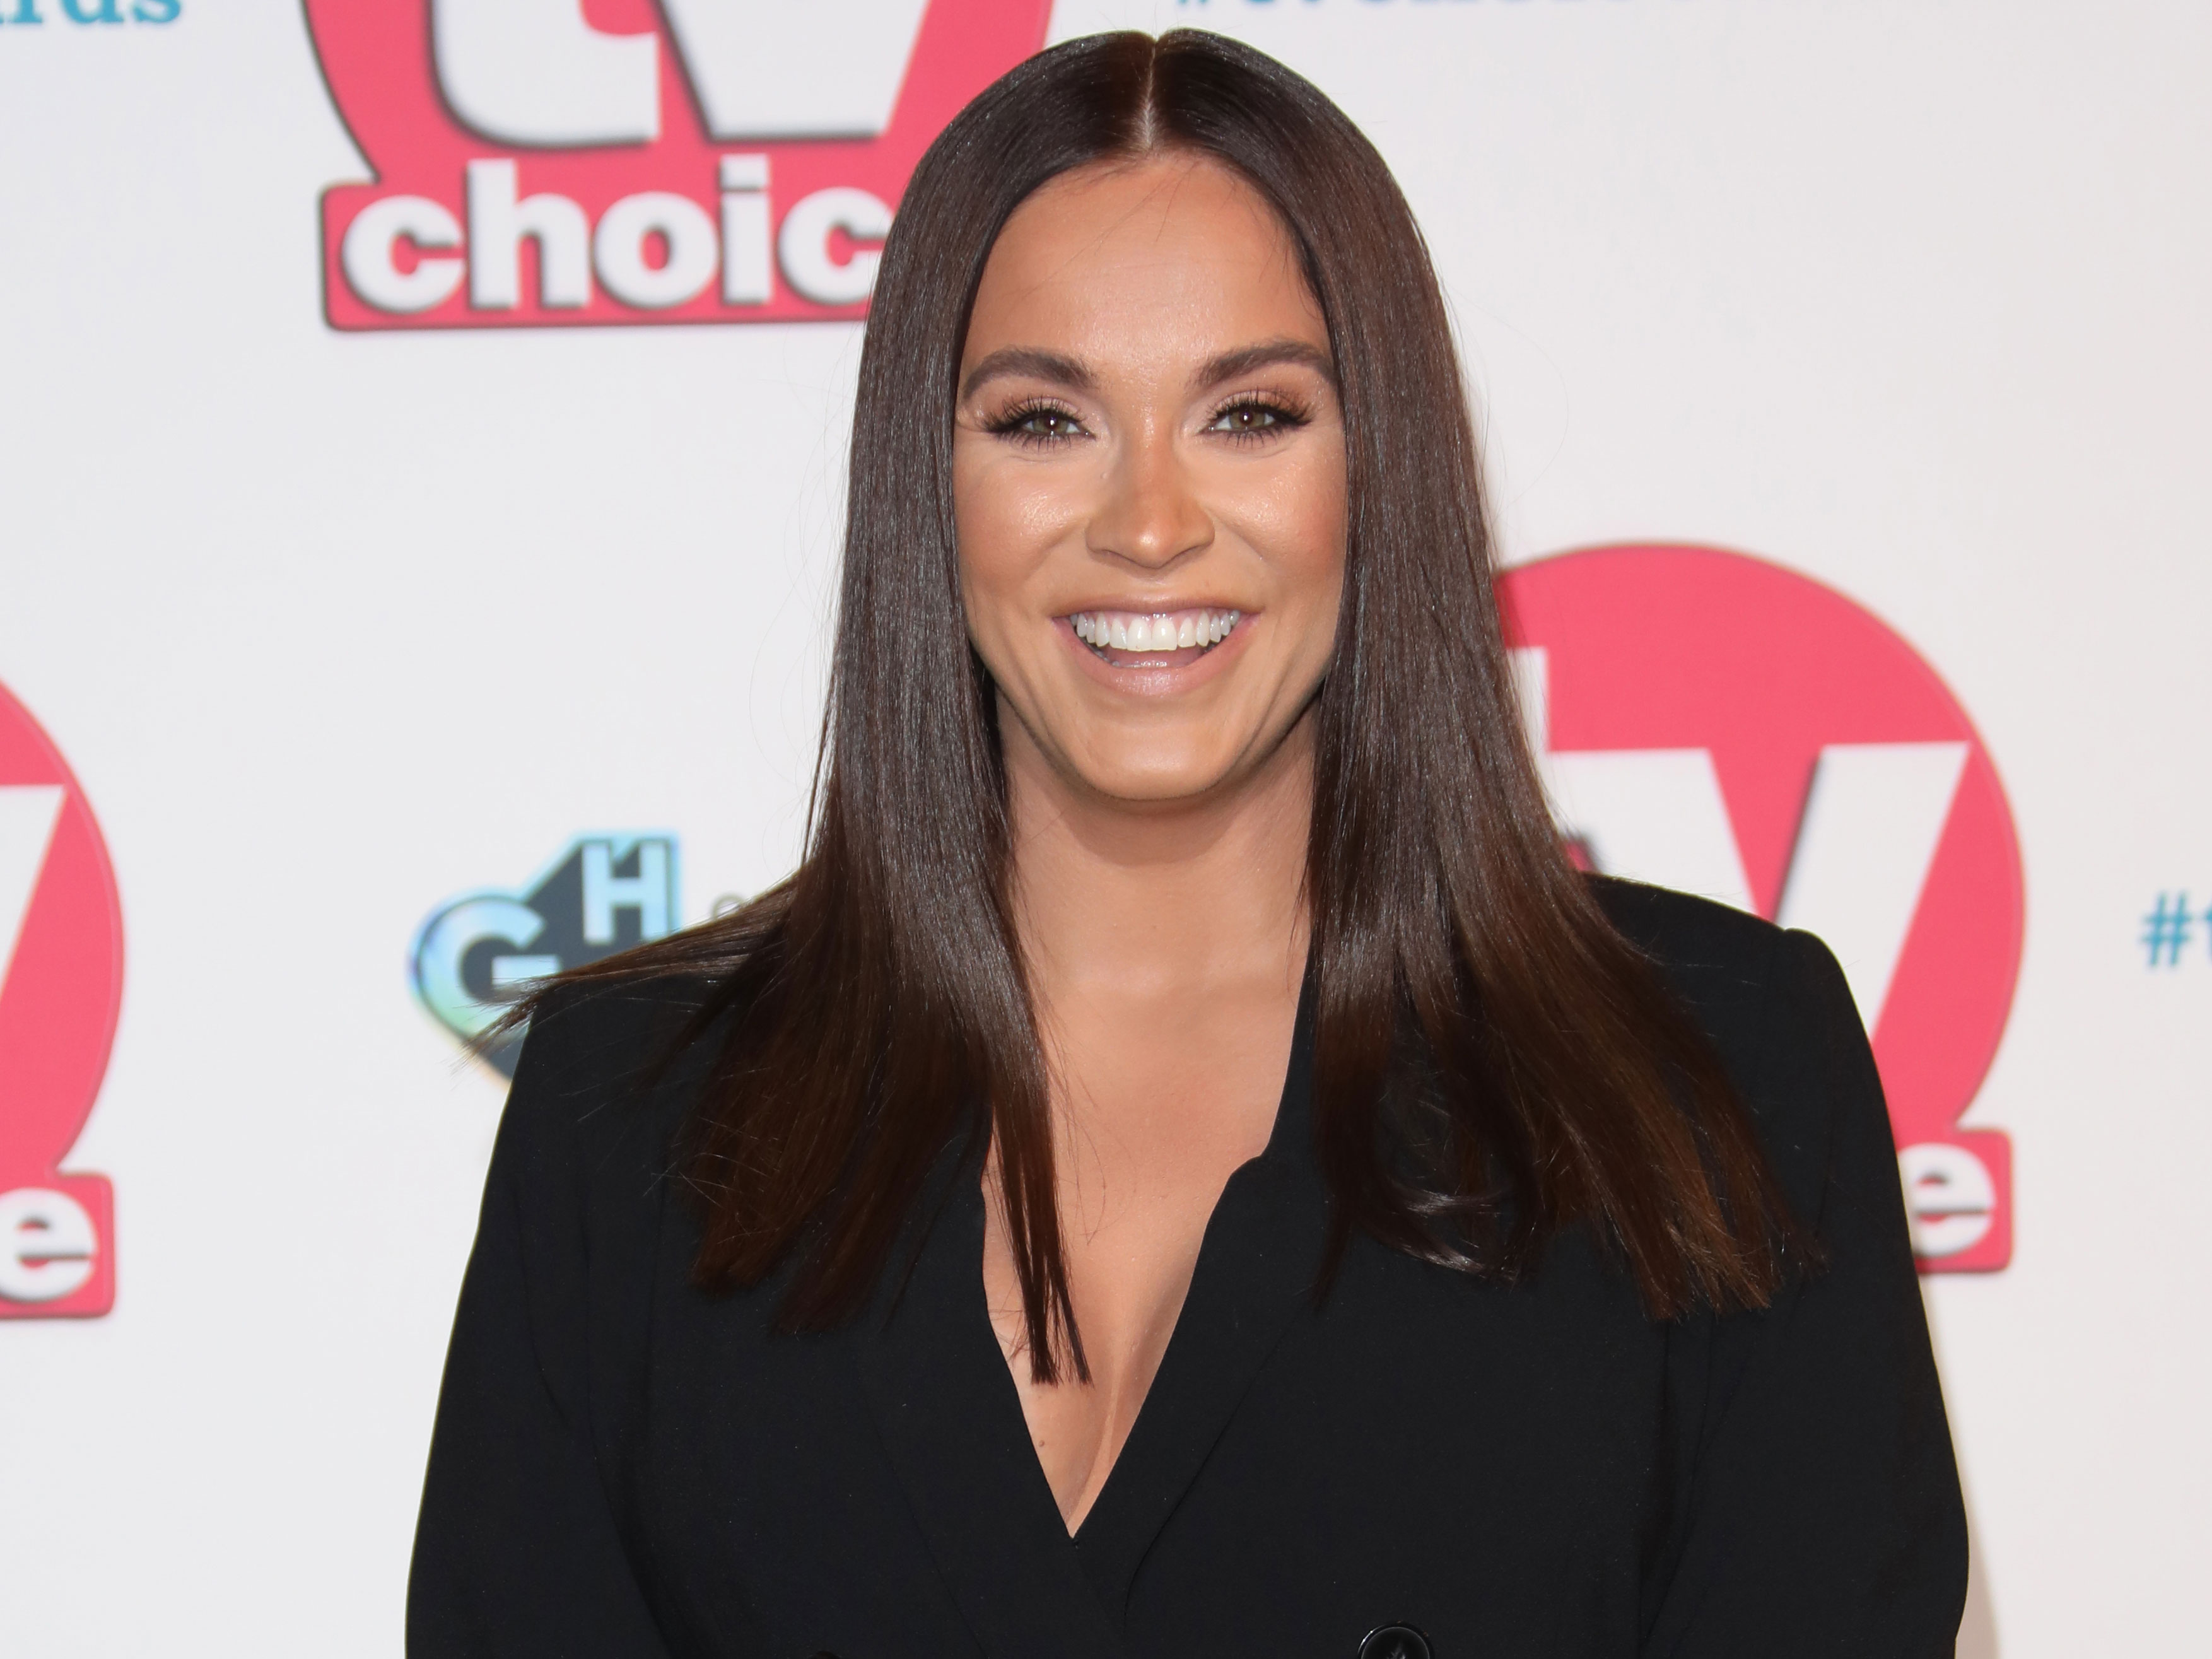 Vicky Pattison reveals she's managed THIS victorious achievement following split from ex fiancé John Noble